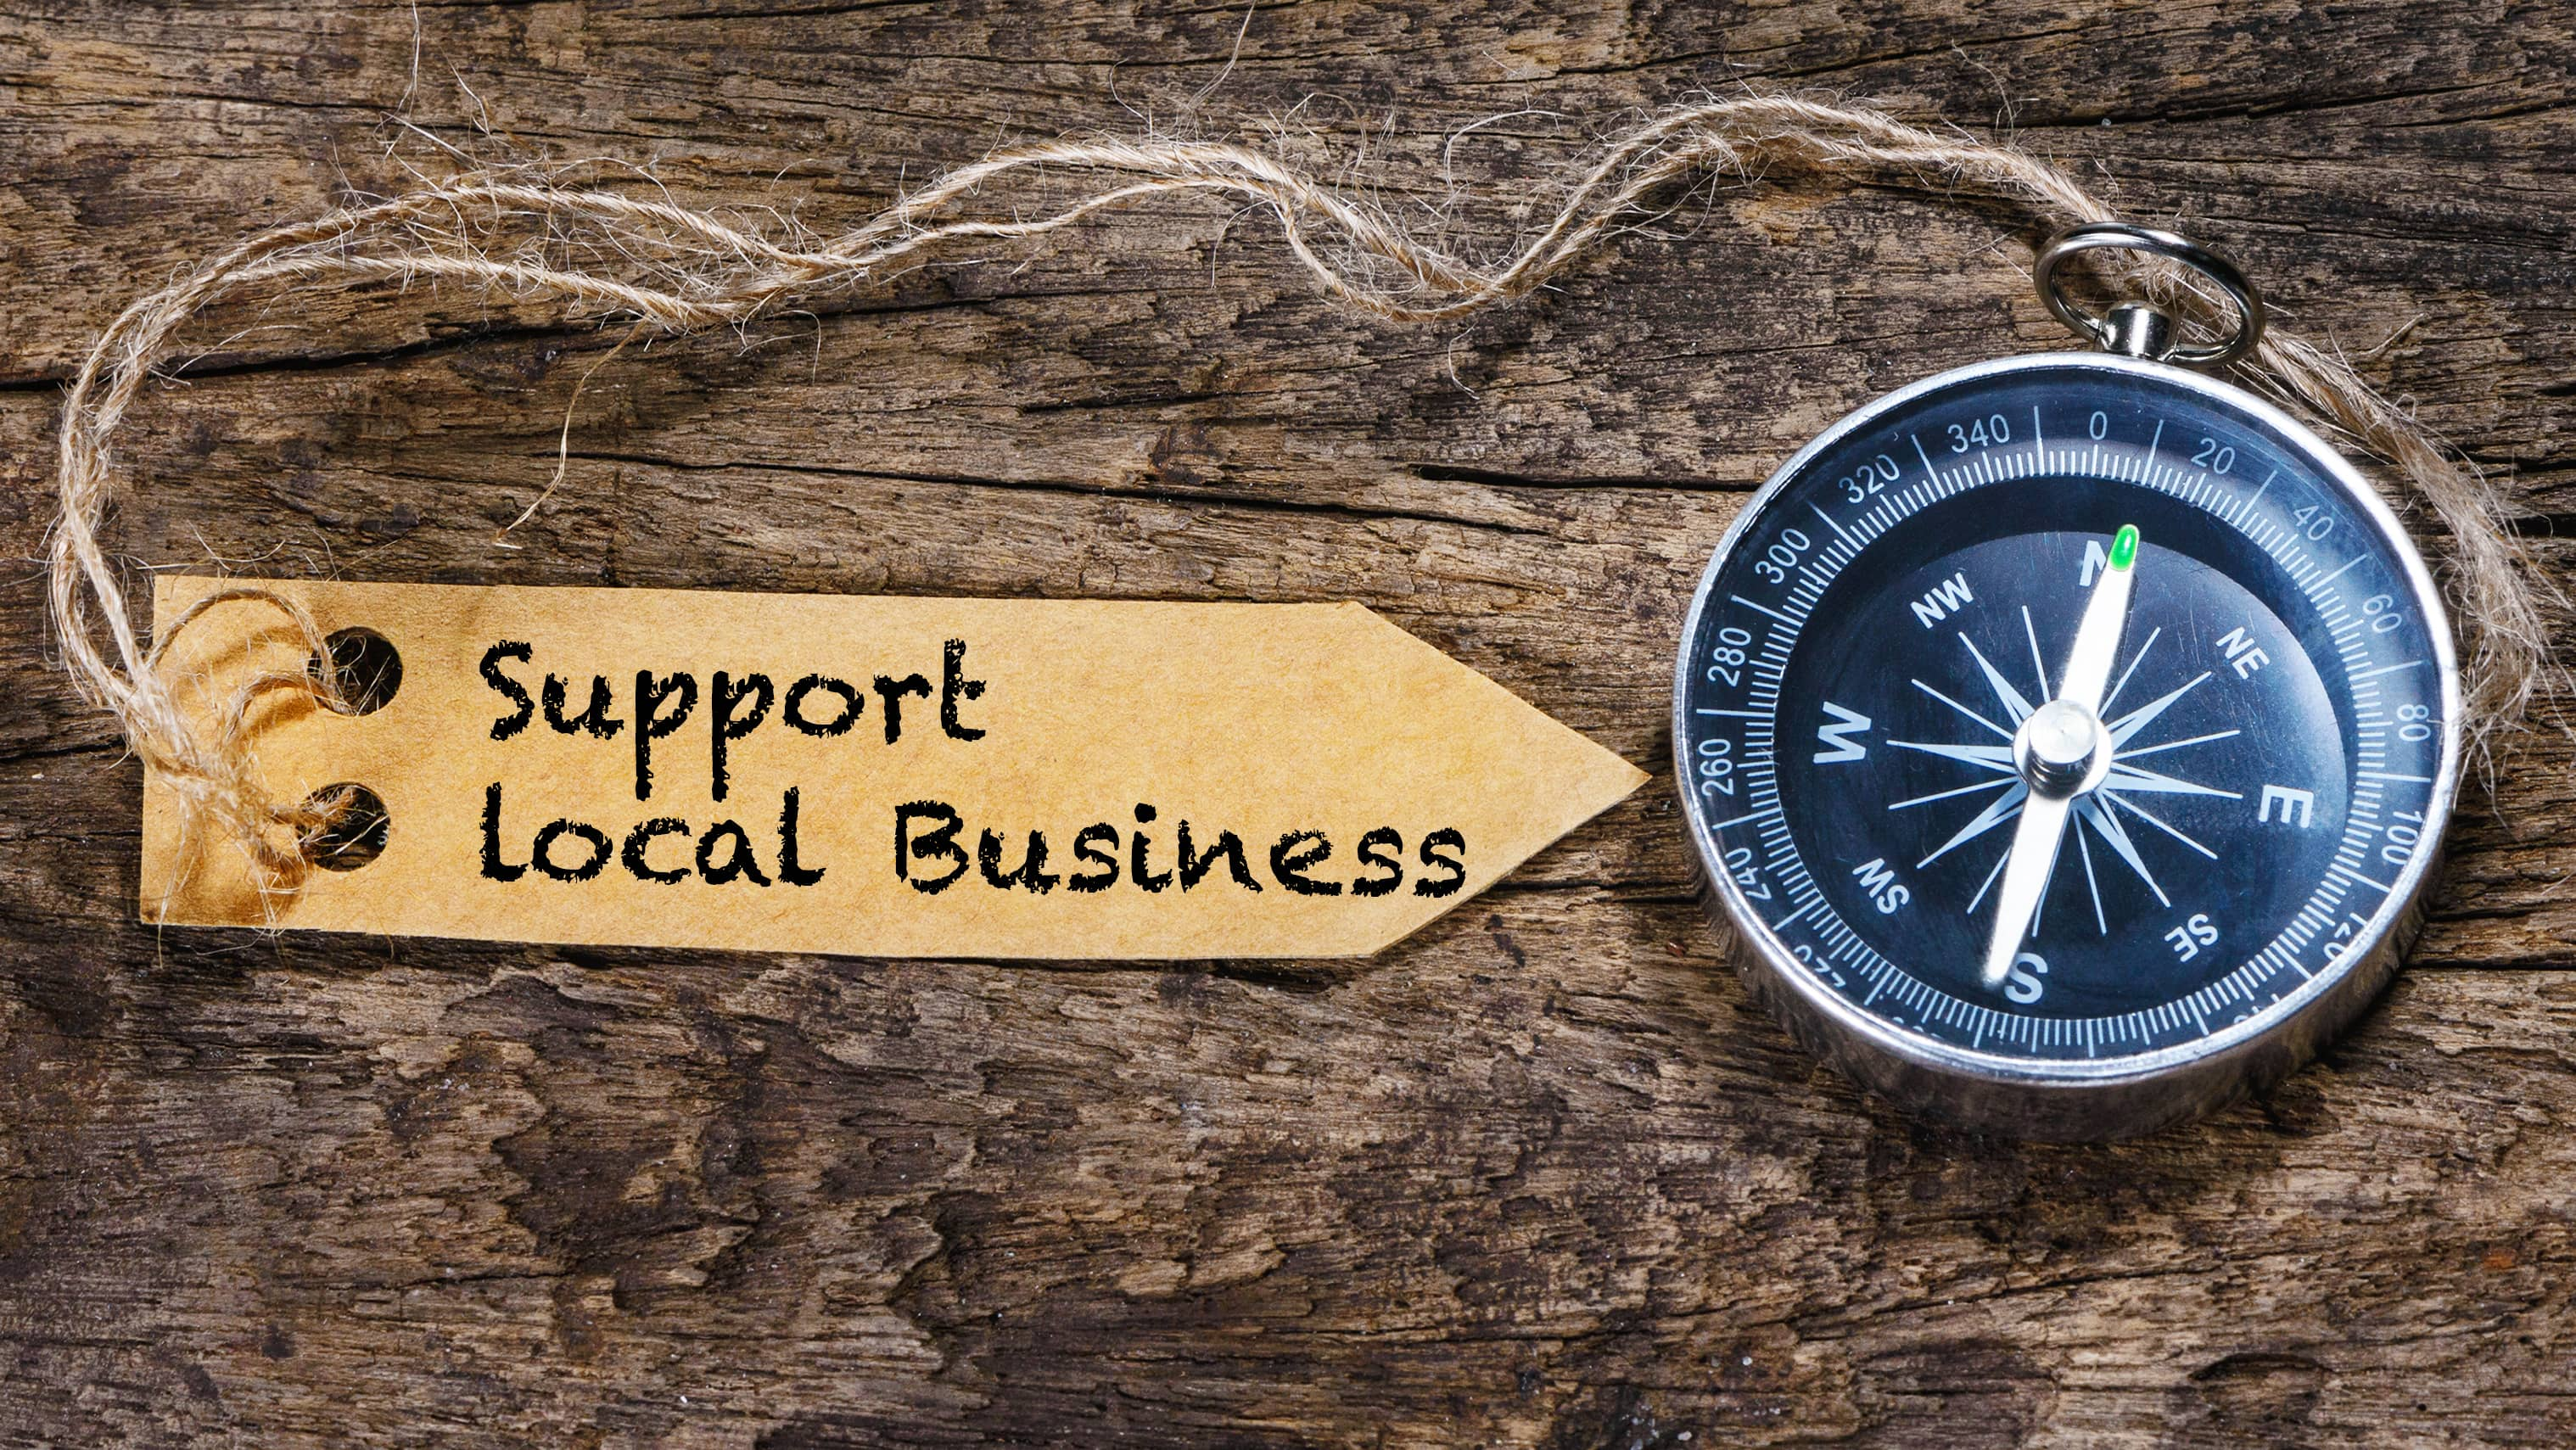 CBD local business support from Cannabi Seattle